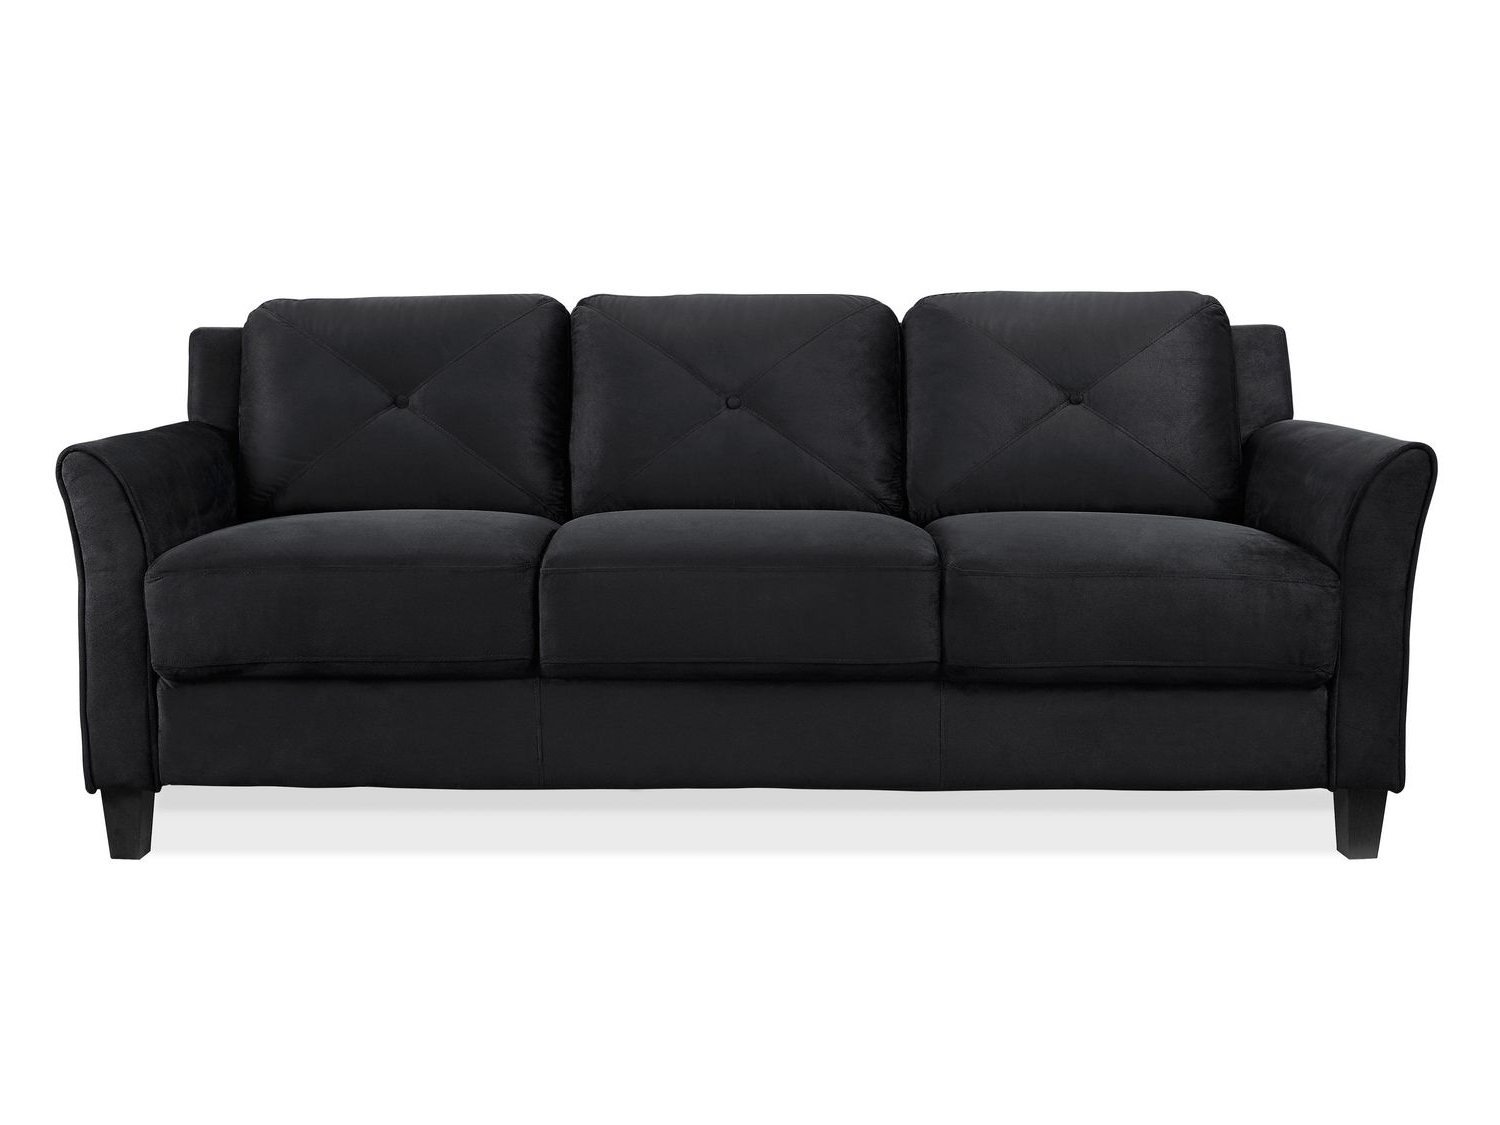 Sectional Sofas At Walmart With 2017 Sofa : Cheap Sectional Sofas Walmart Walmart Tablet Samsung Camas (View 13 of 15)